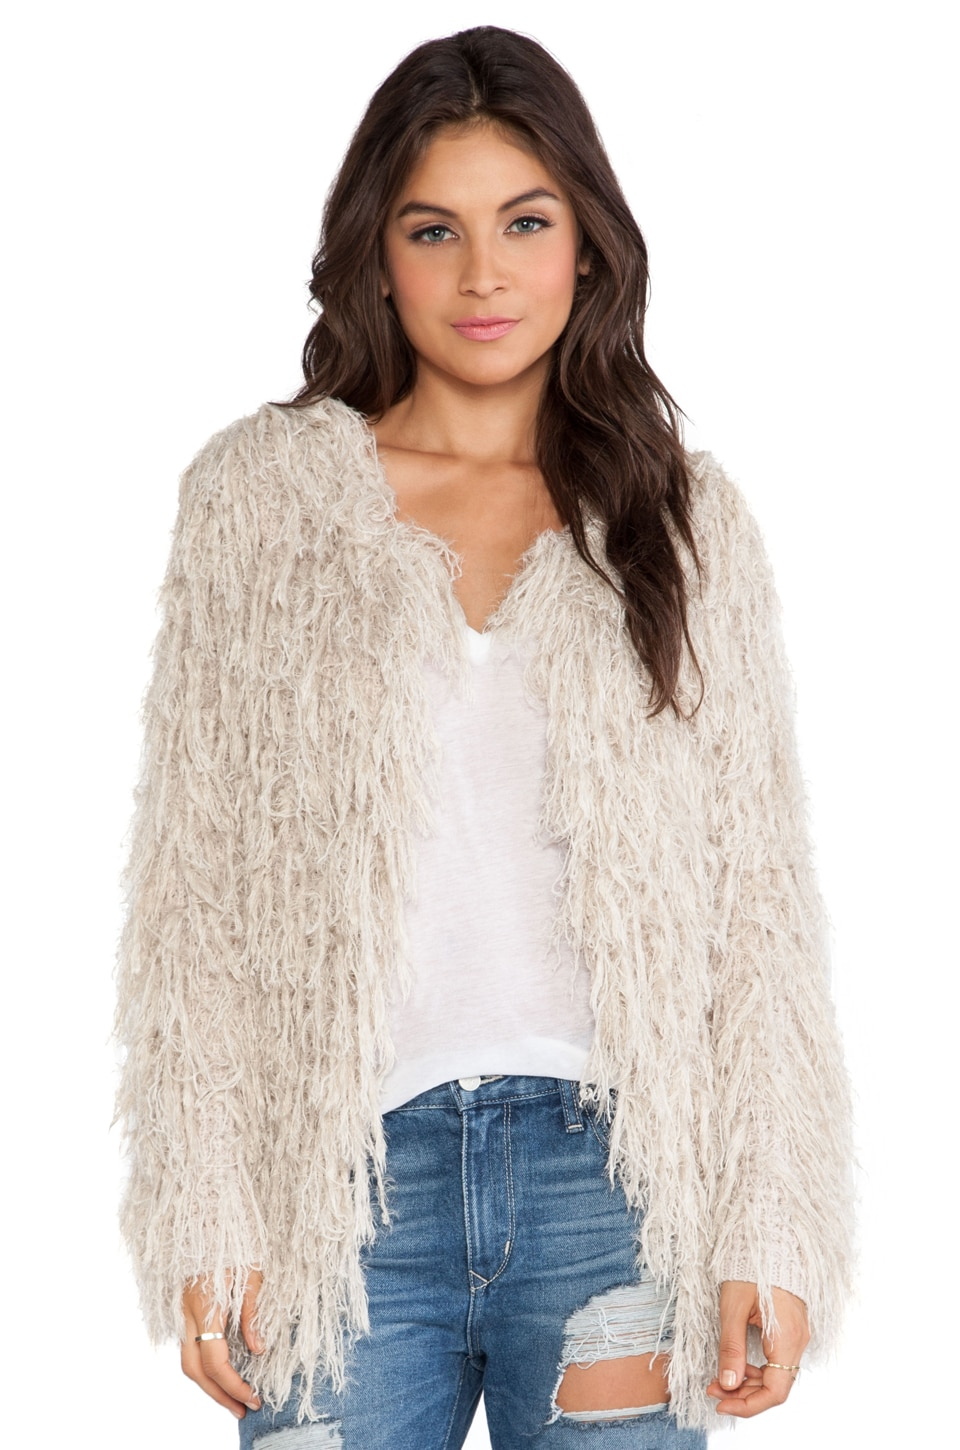 Free People Faithful Shaggy Cardigan in Sand